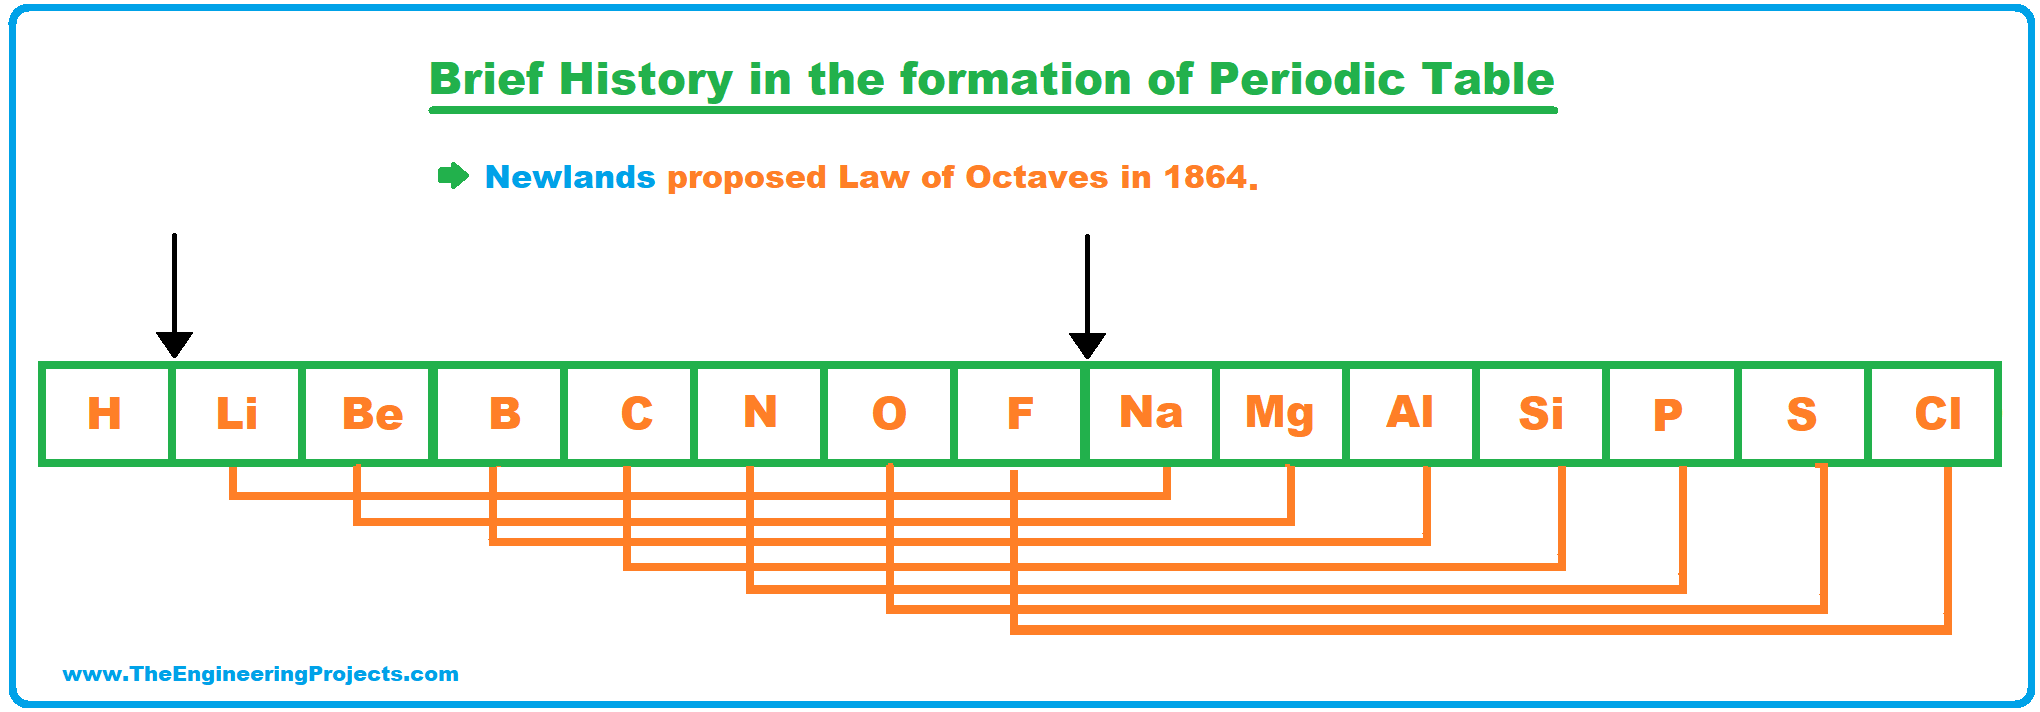 History of Periodic Table, Periodic Table, law of octaves, newlands law of octaves, periodic table deifnition, periodic table history